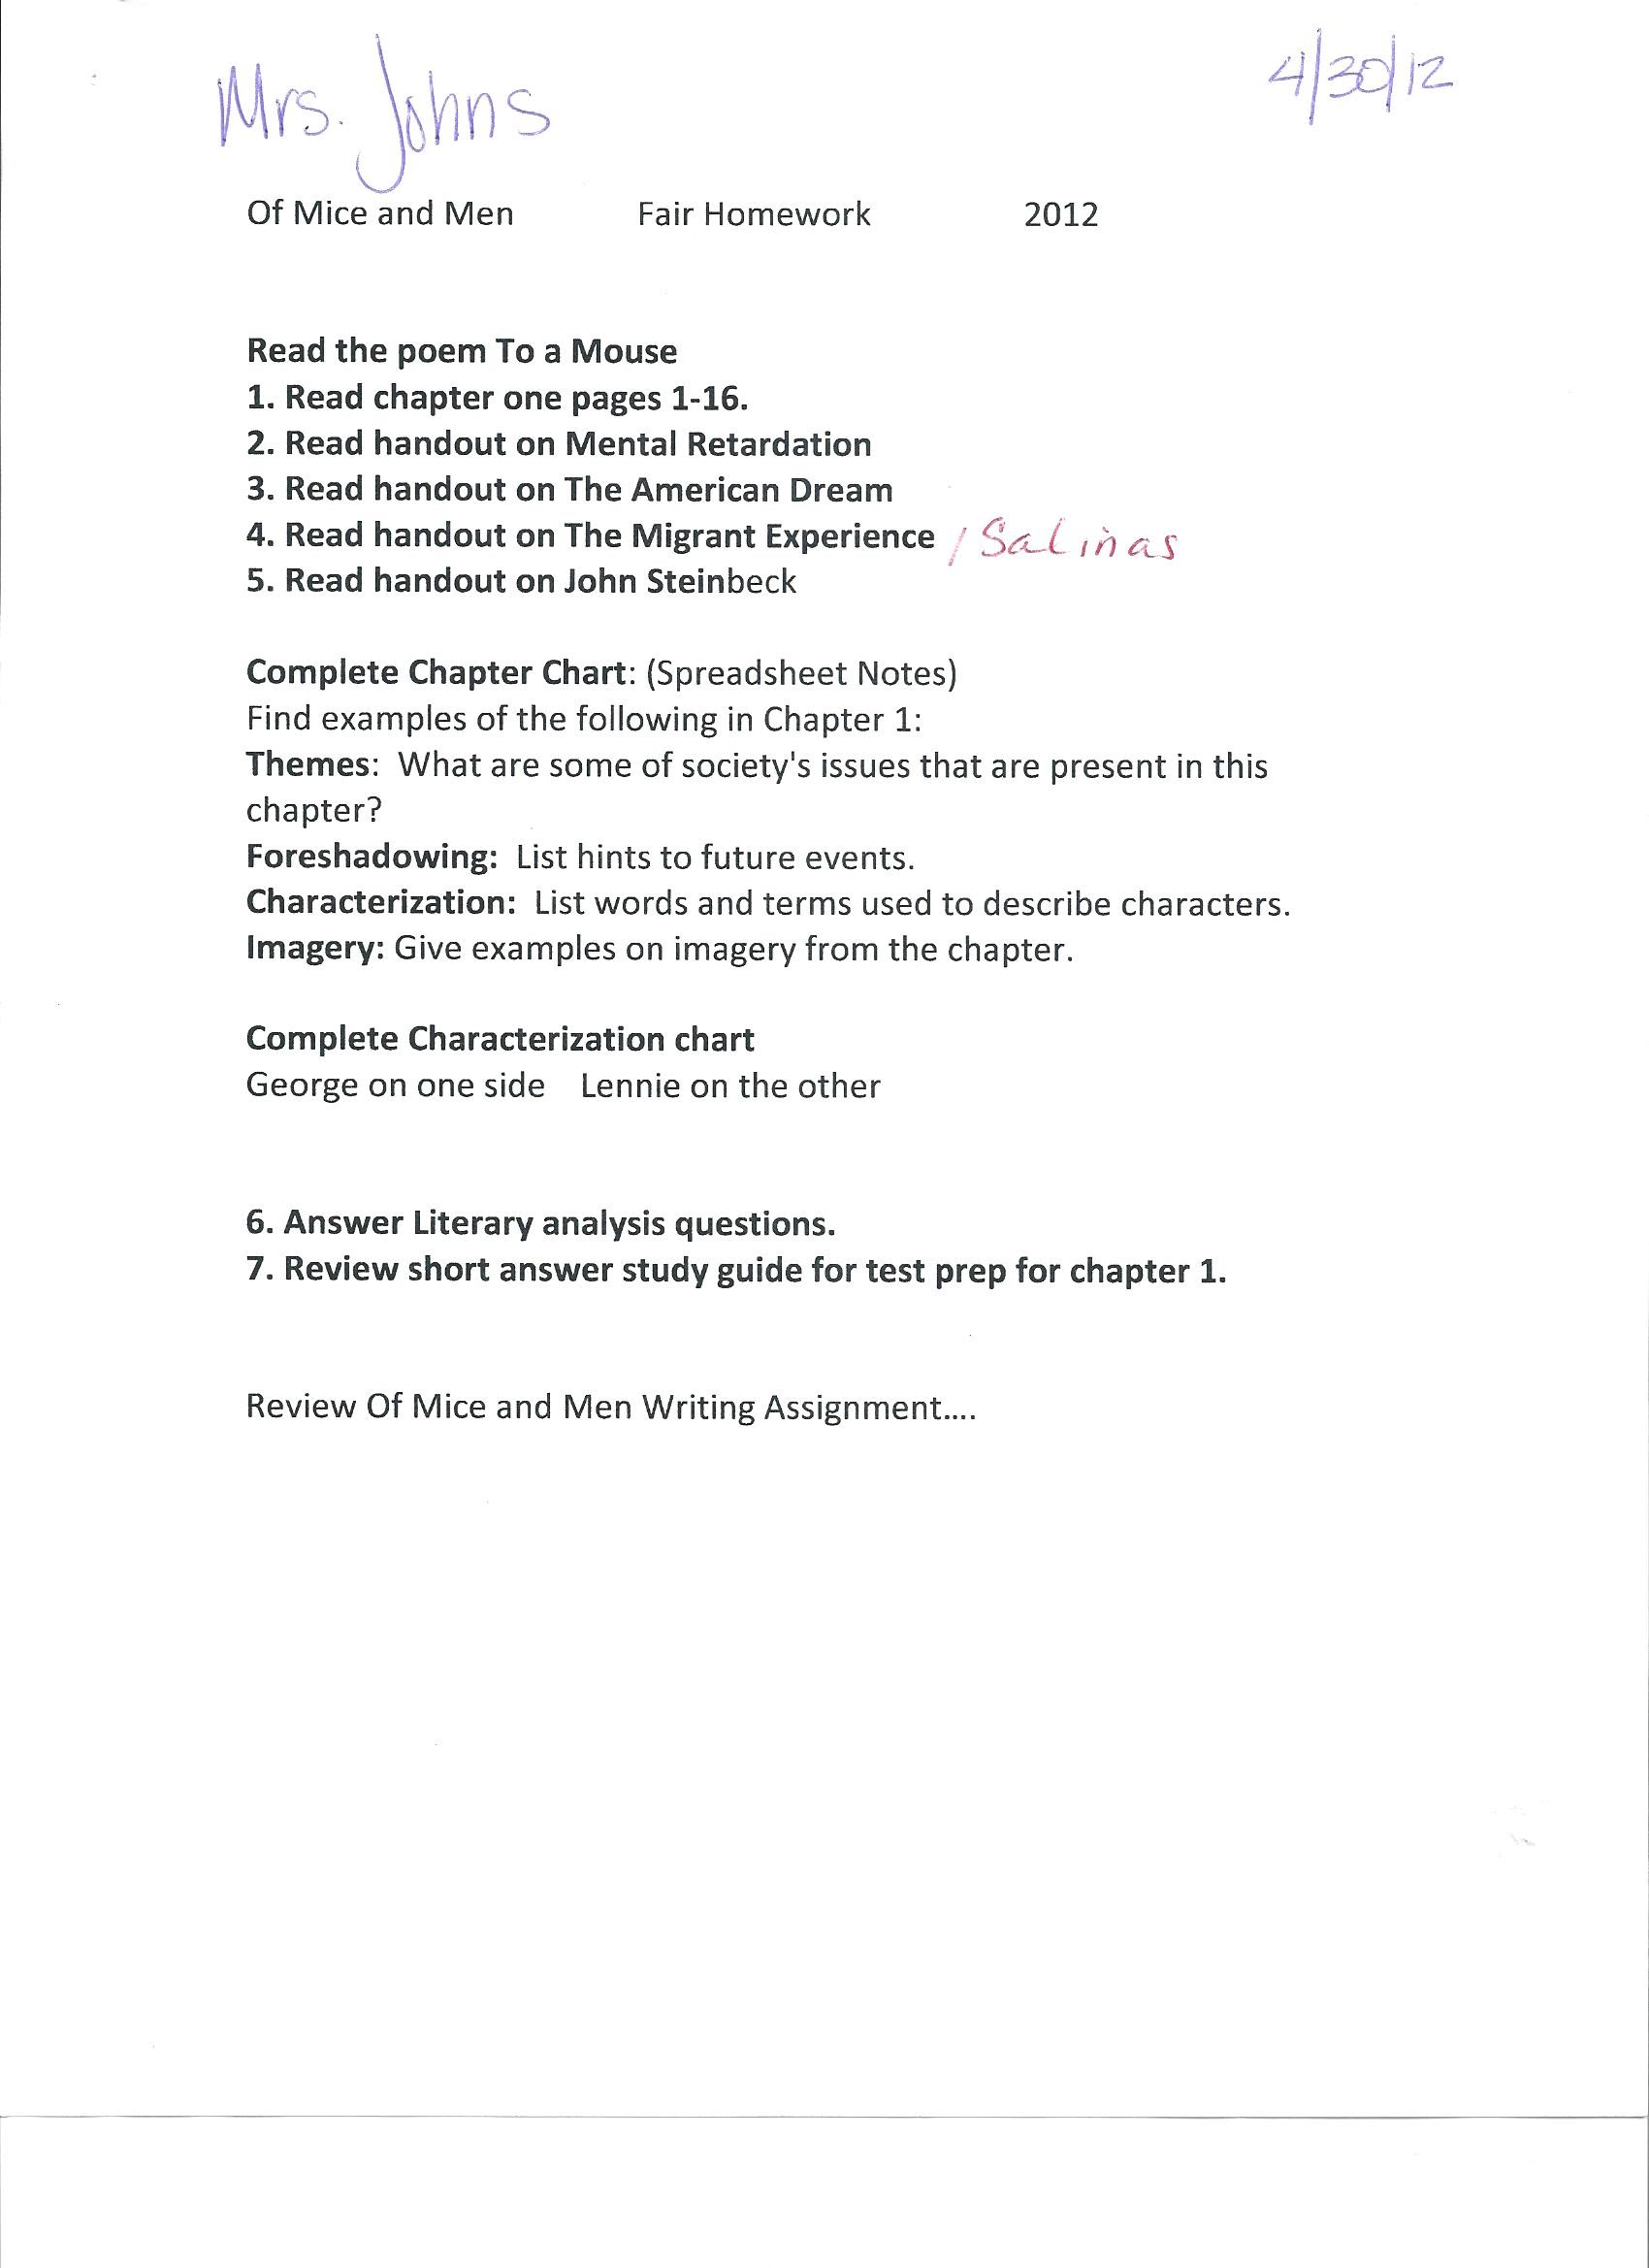 english hhsresourceprogram english 1 04 30 12 of mice and men packet instructions pg1 jpg